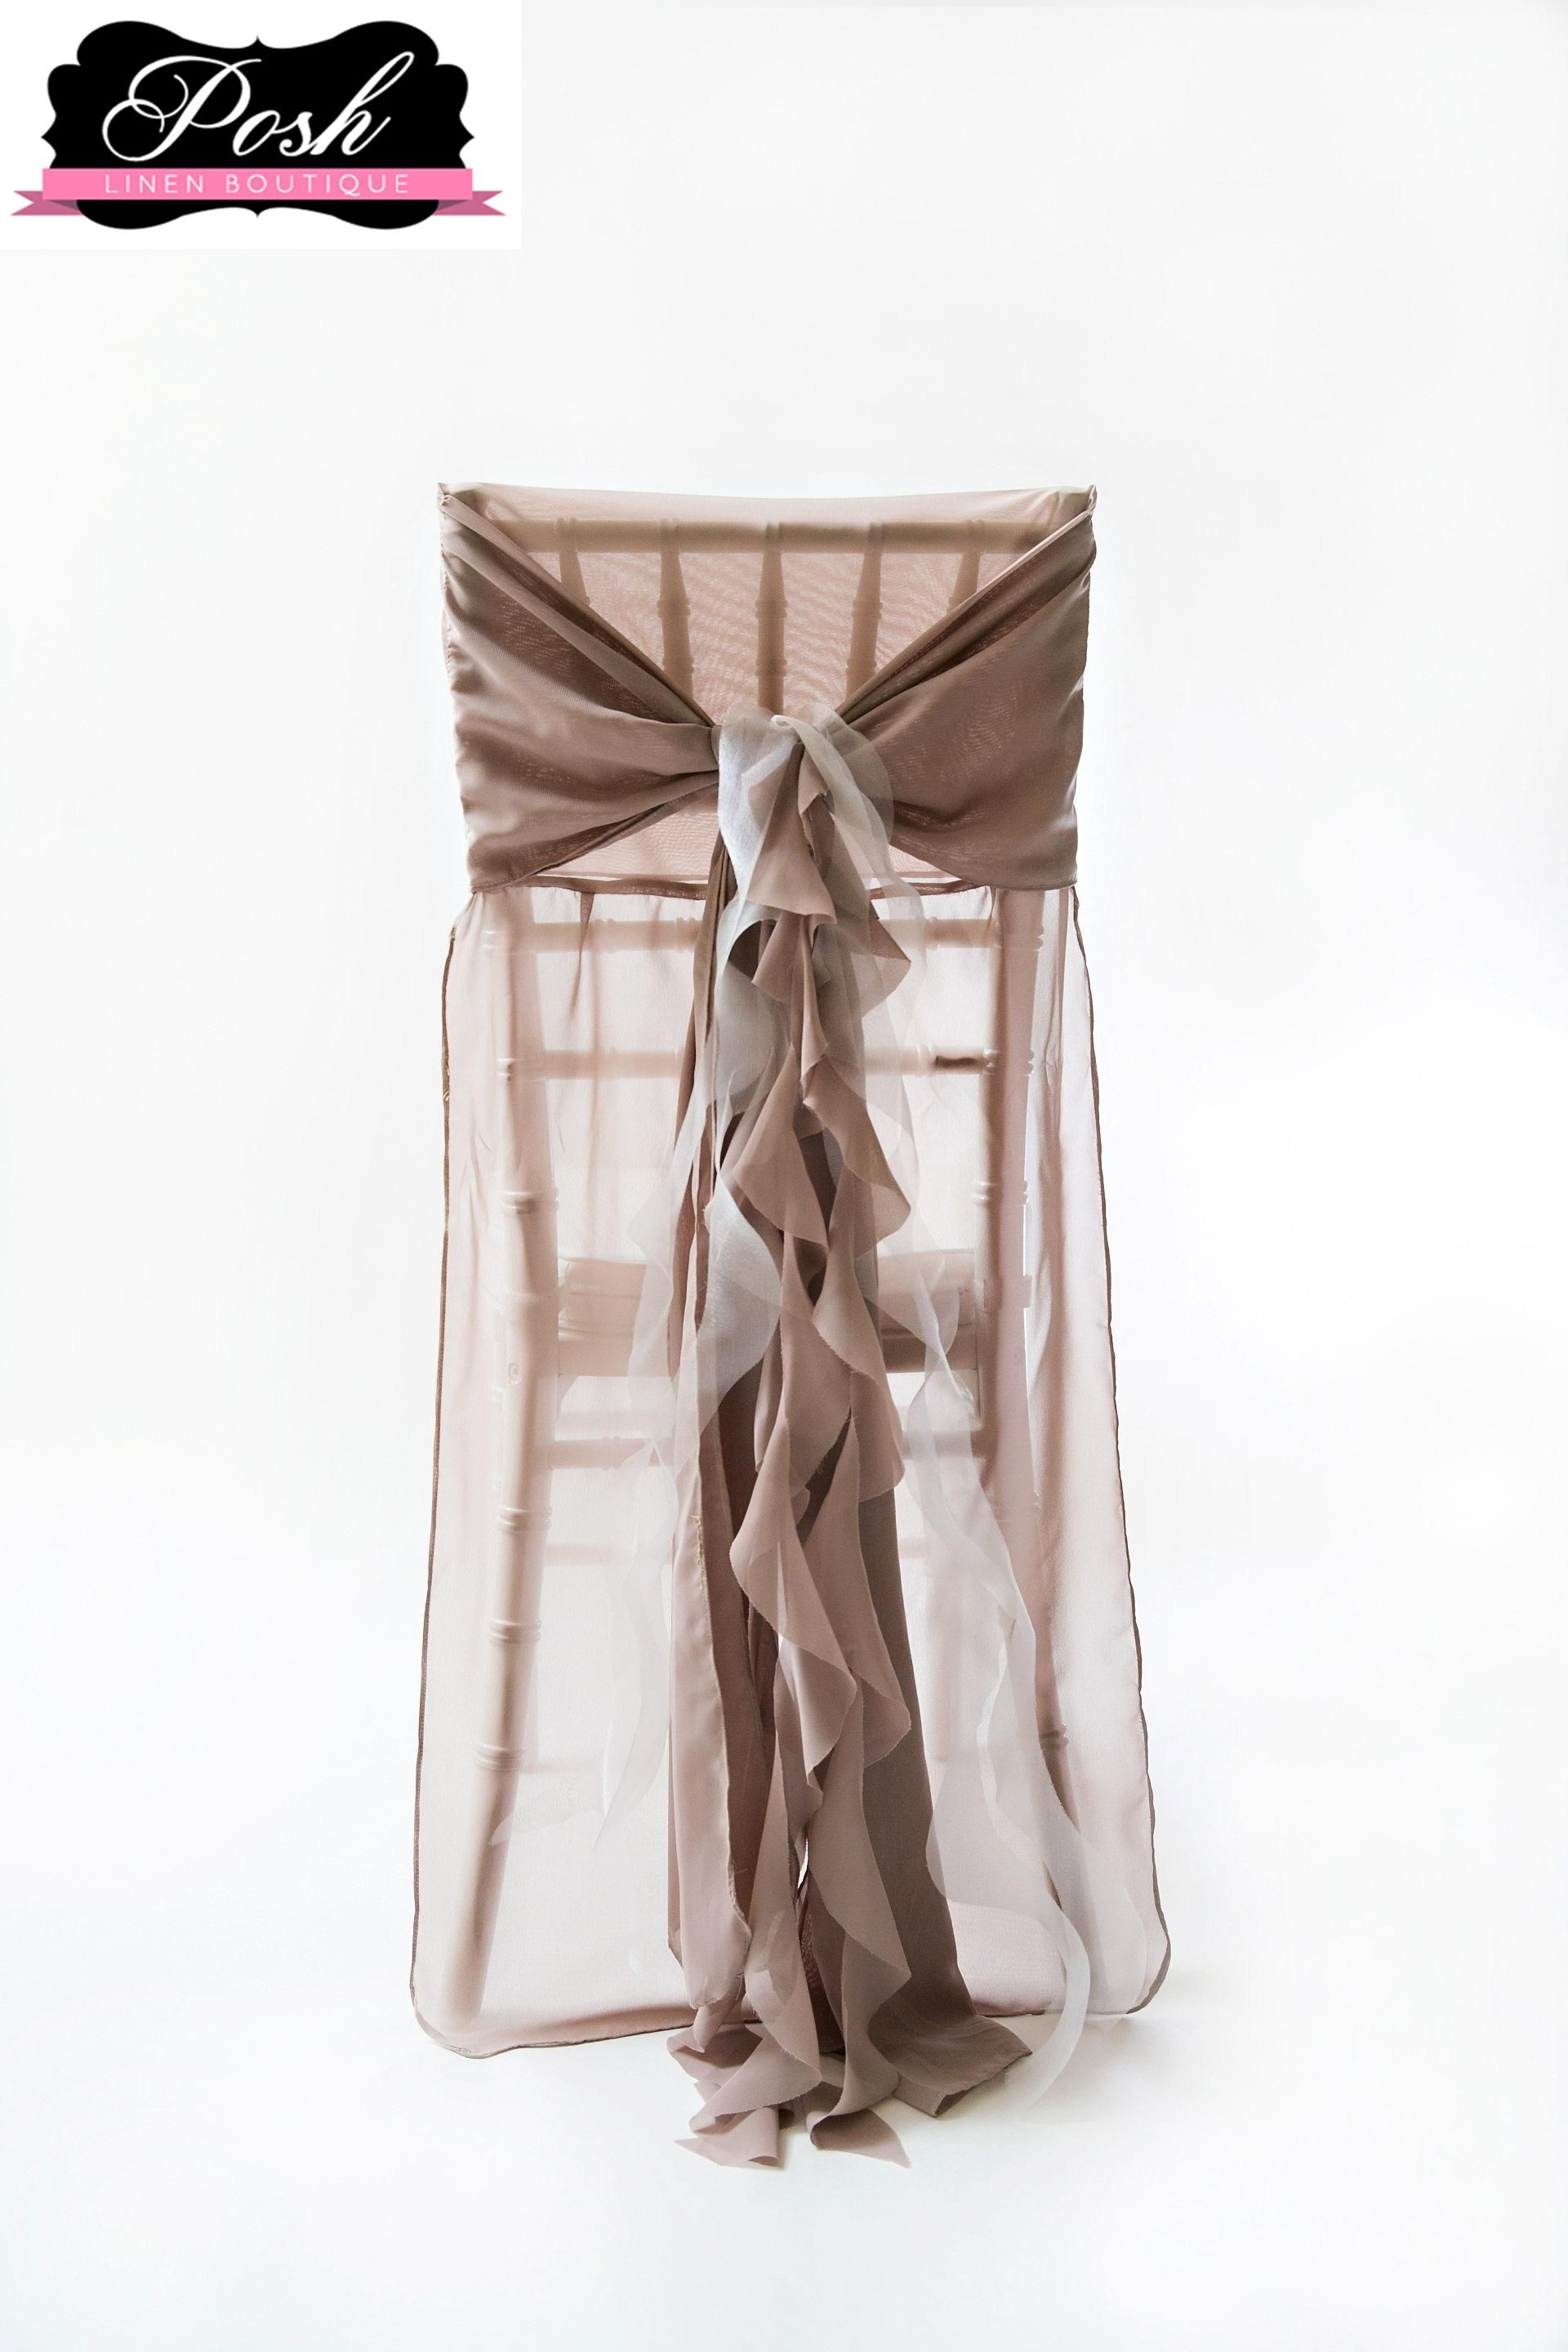 Clean classic matte organza gives this chair cover a